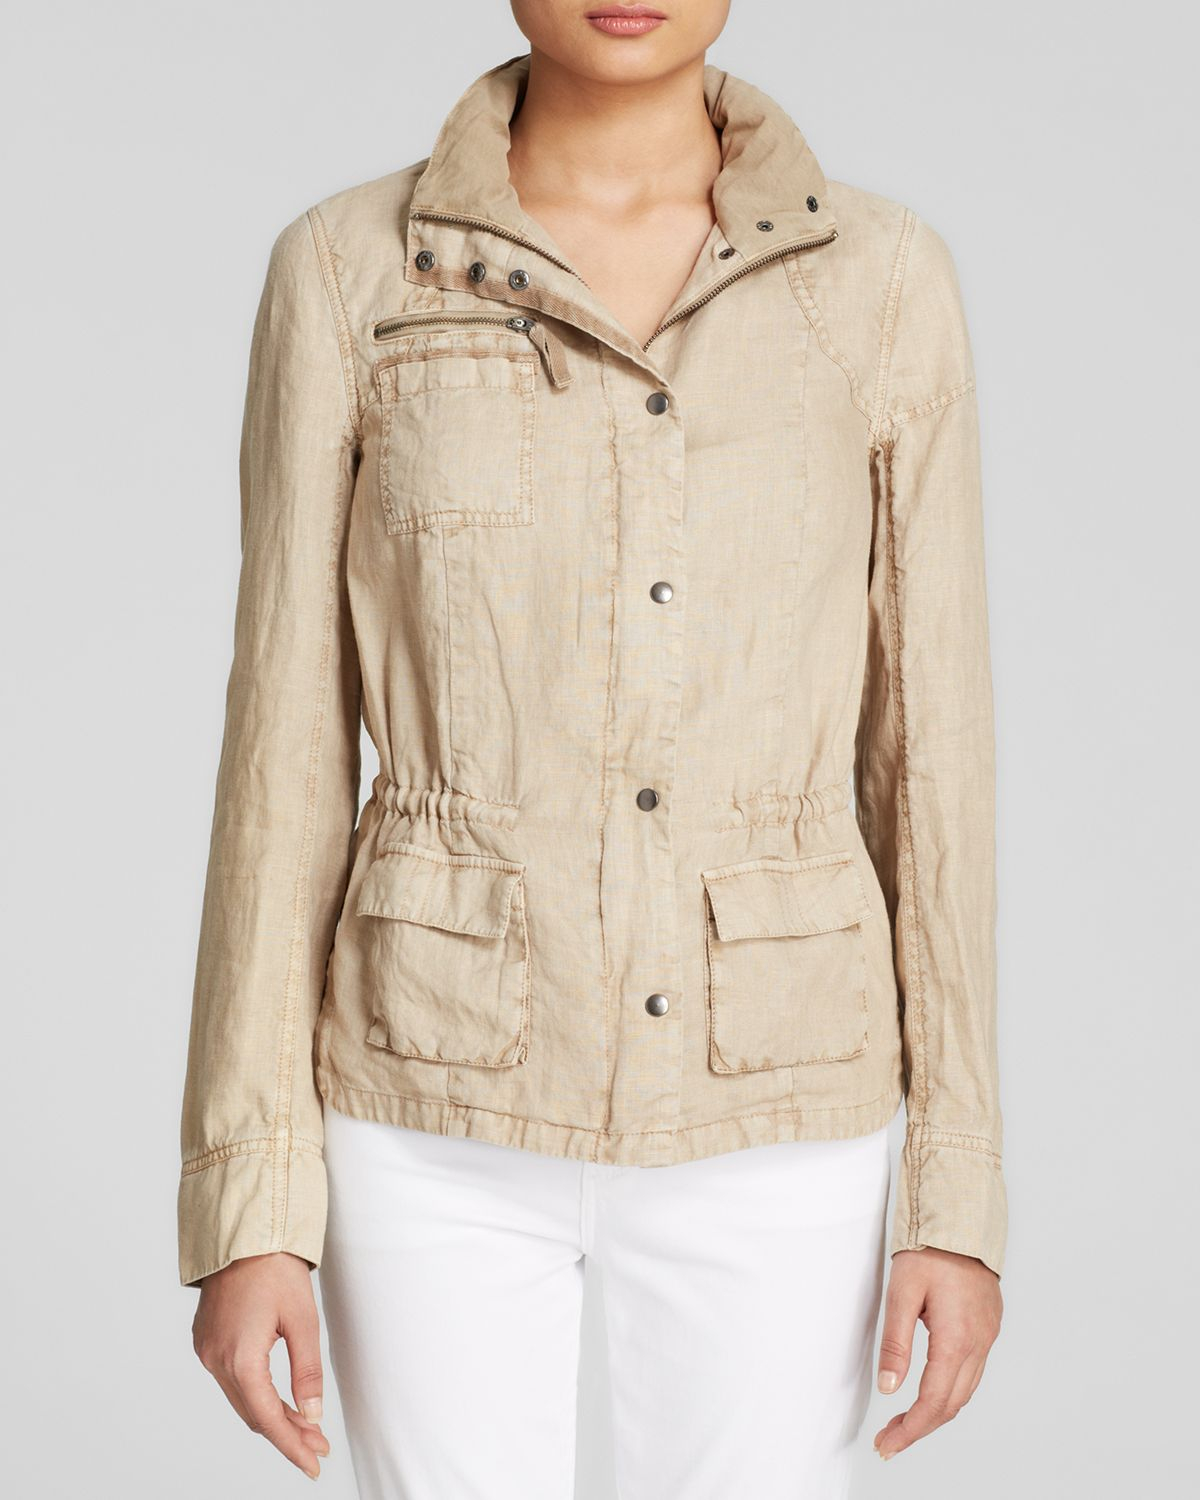 Utility Jacket Jackets And Nike: Three Dots Linen Utility Jacket In Beige (Caribbean Sand